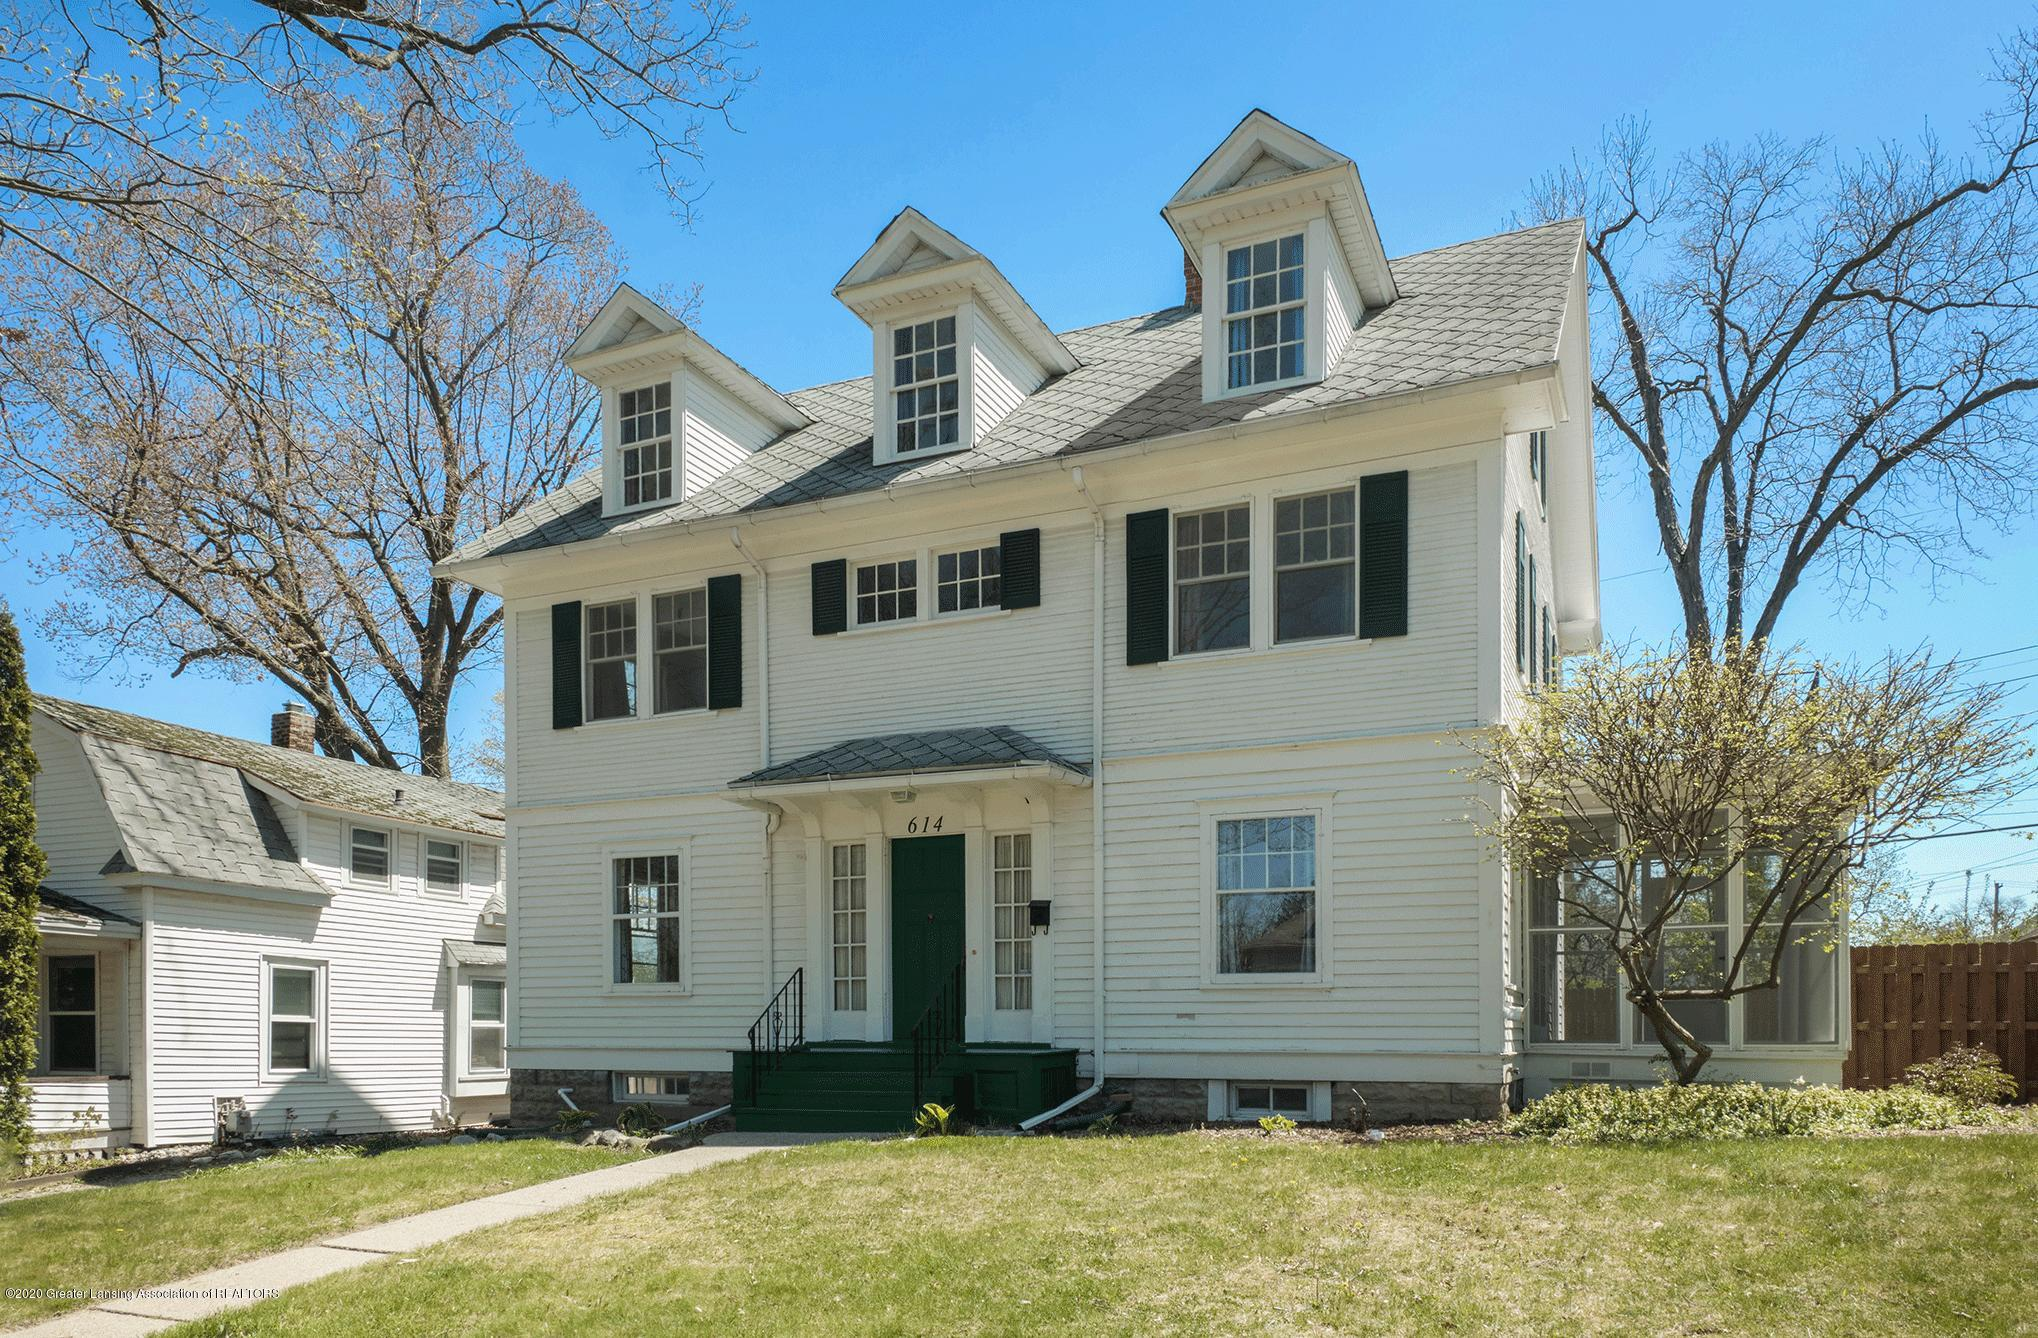 614 Forest St - 1 - 22